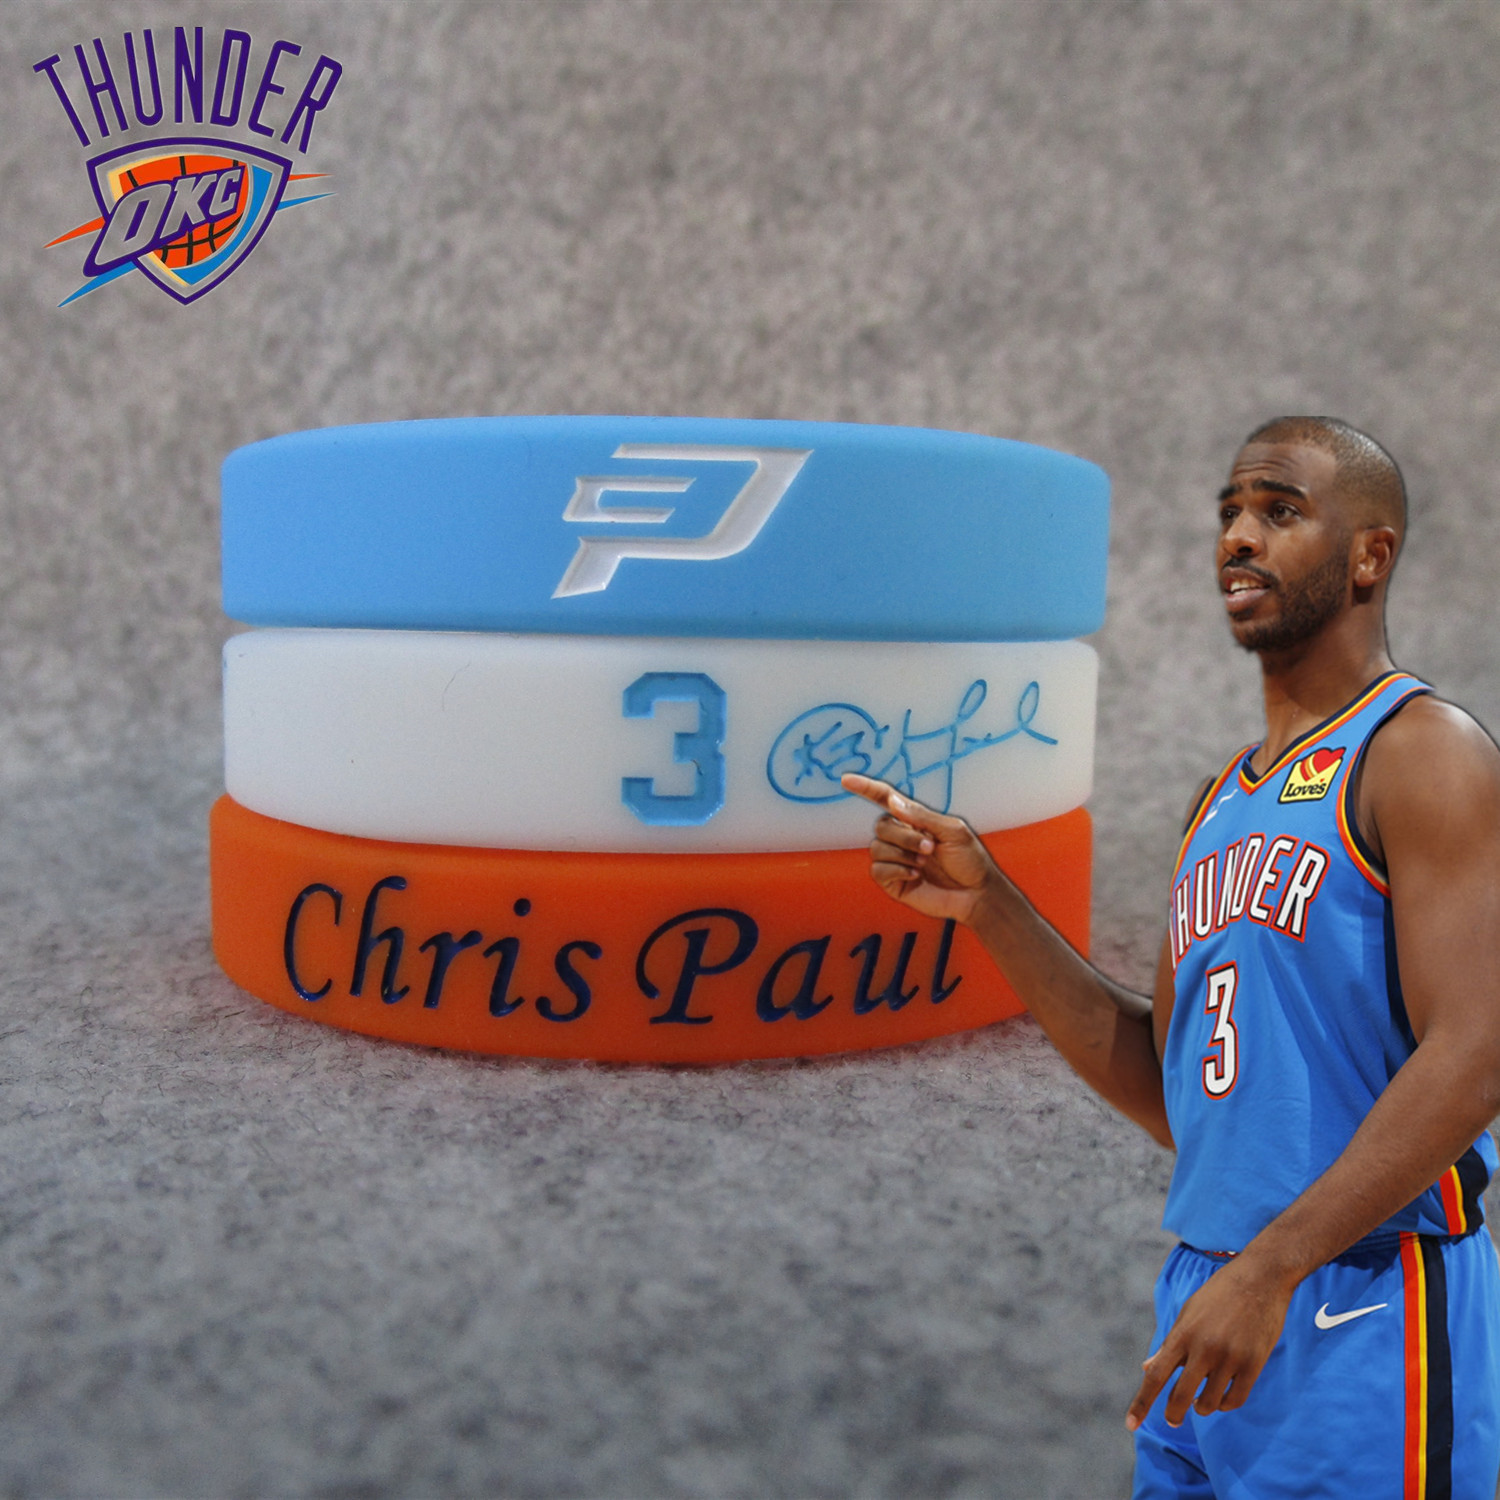 Thunder 3 Chris Polo Chris Paul Signature Sports Bracelet Silica Gel Night Light Wrist Strap Fans